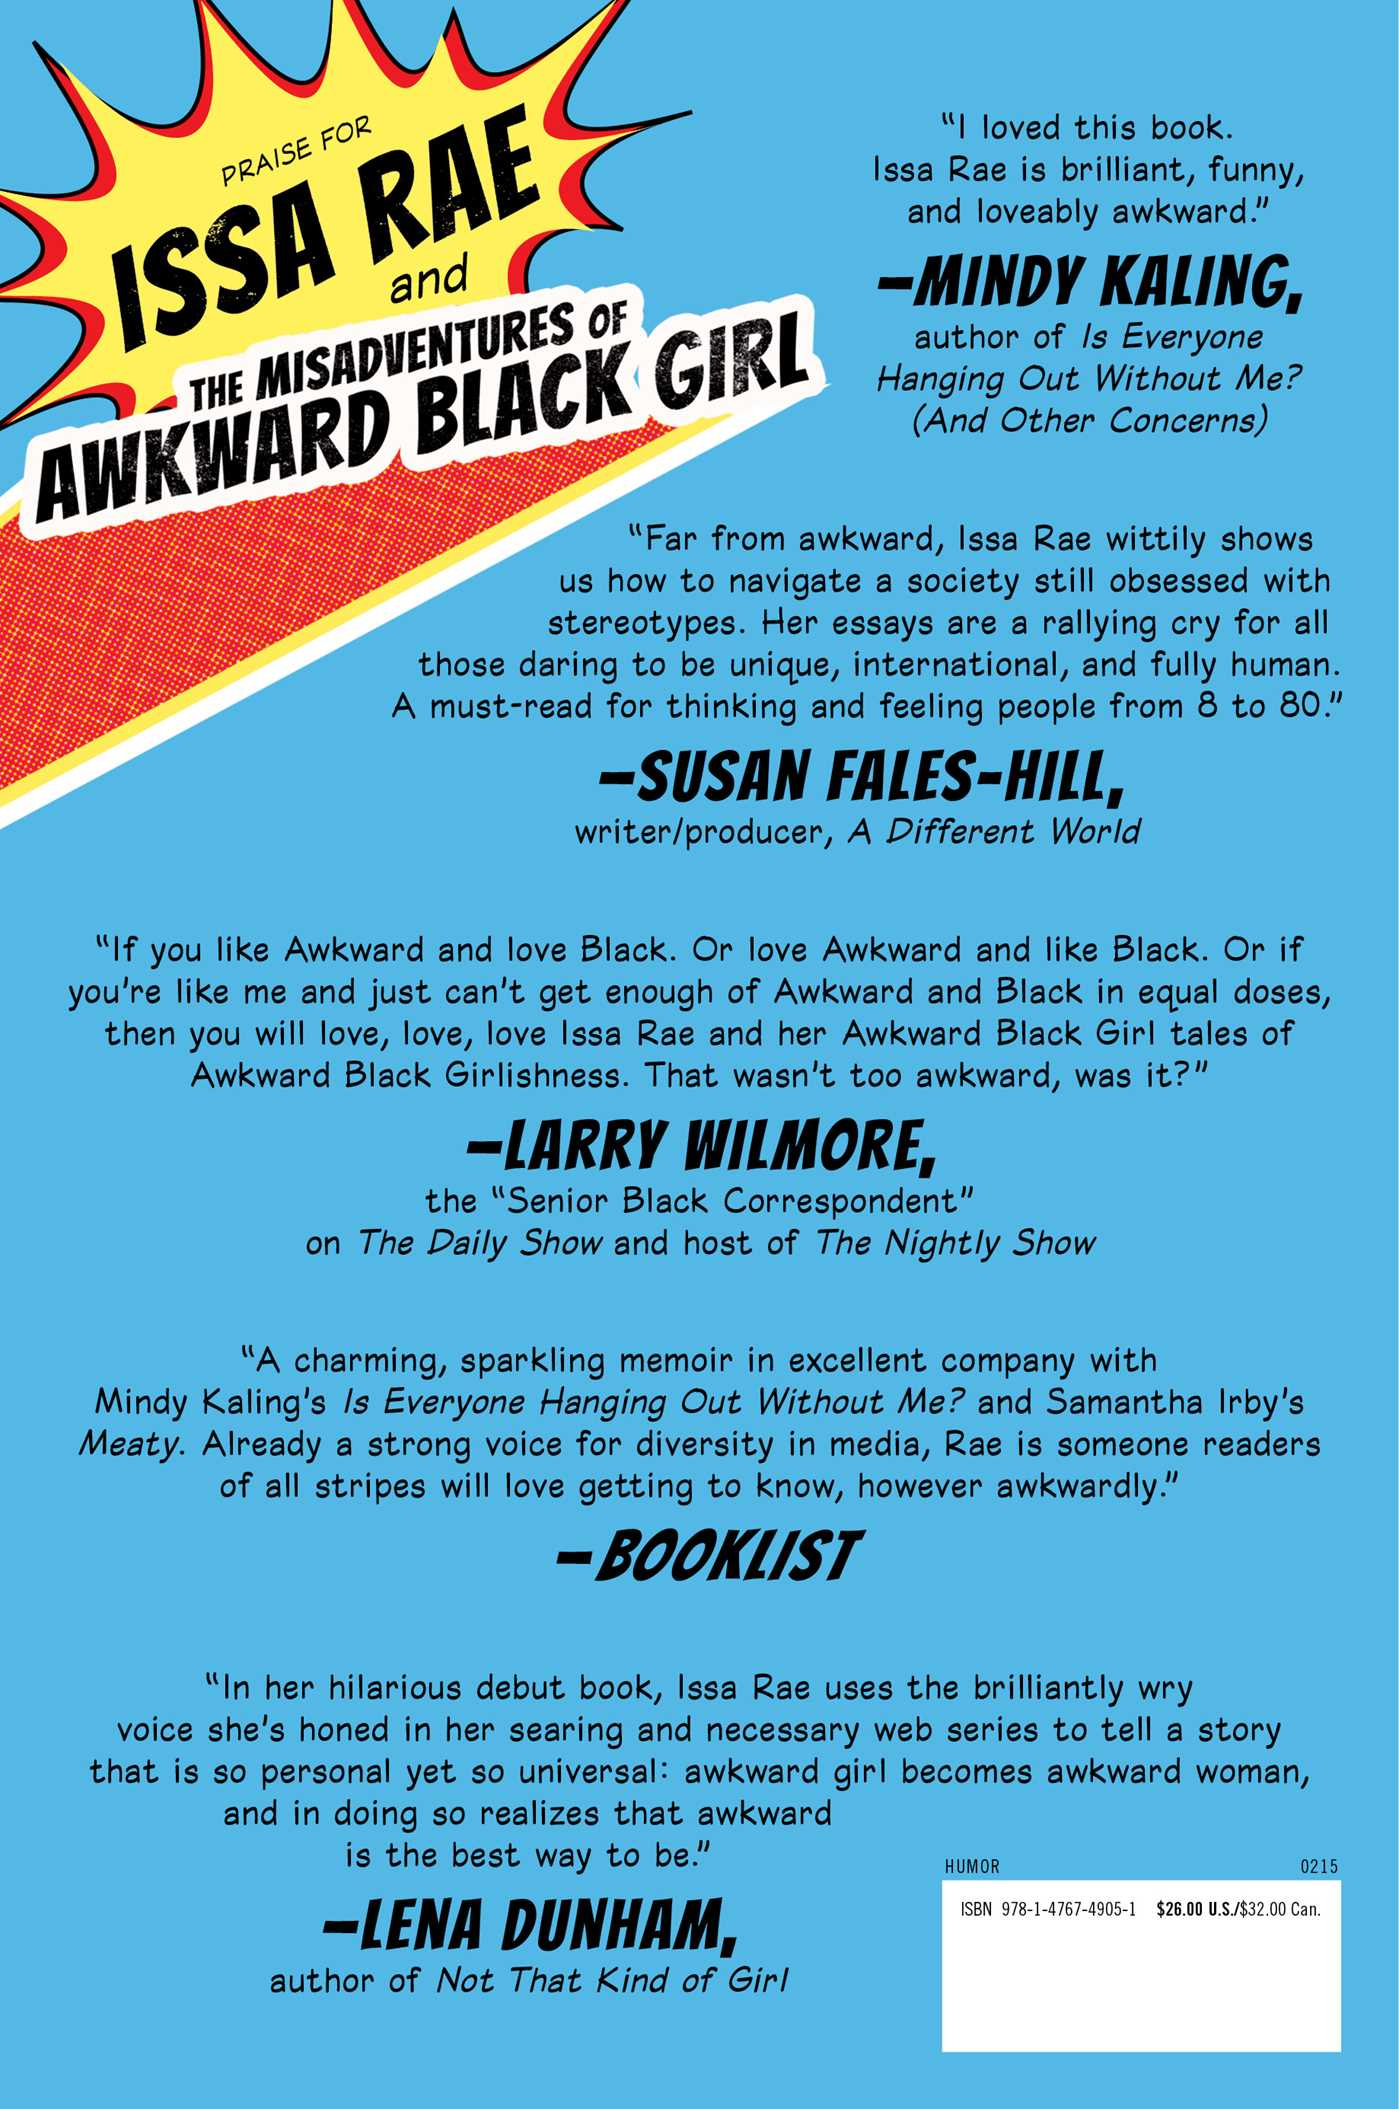 Misadventures-of-awkward-black-girl-9781476749051_hr-back